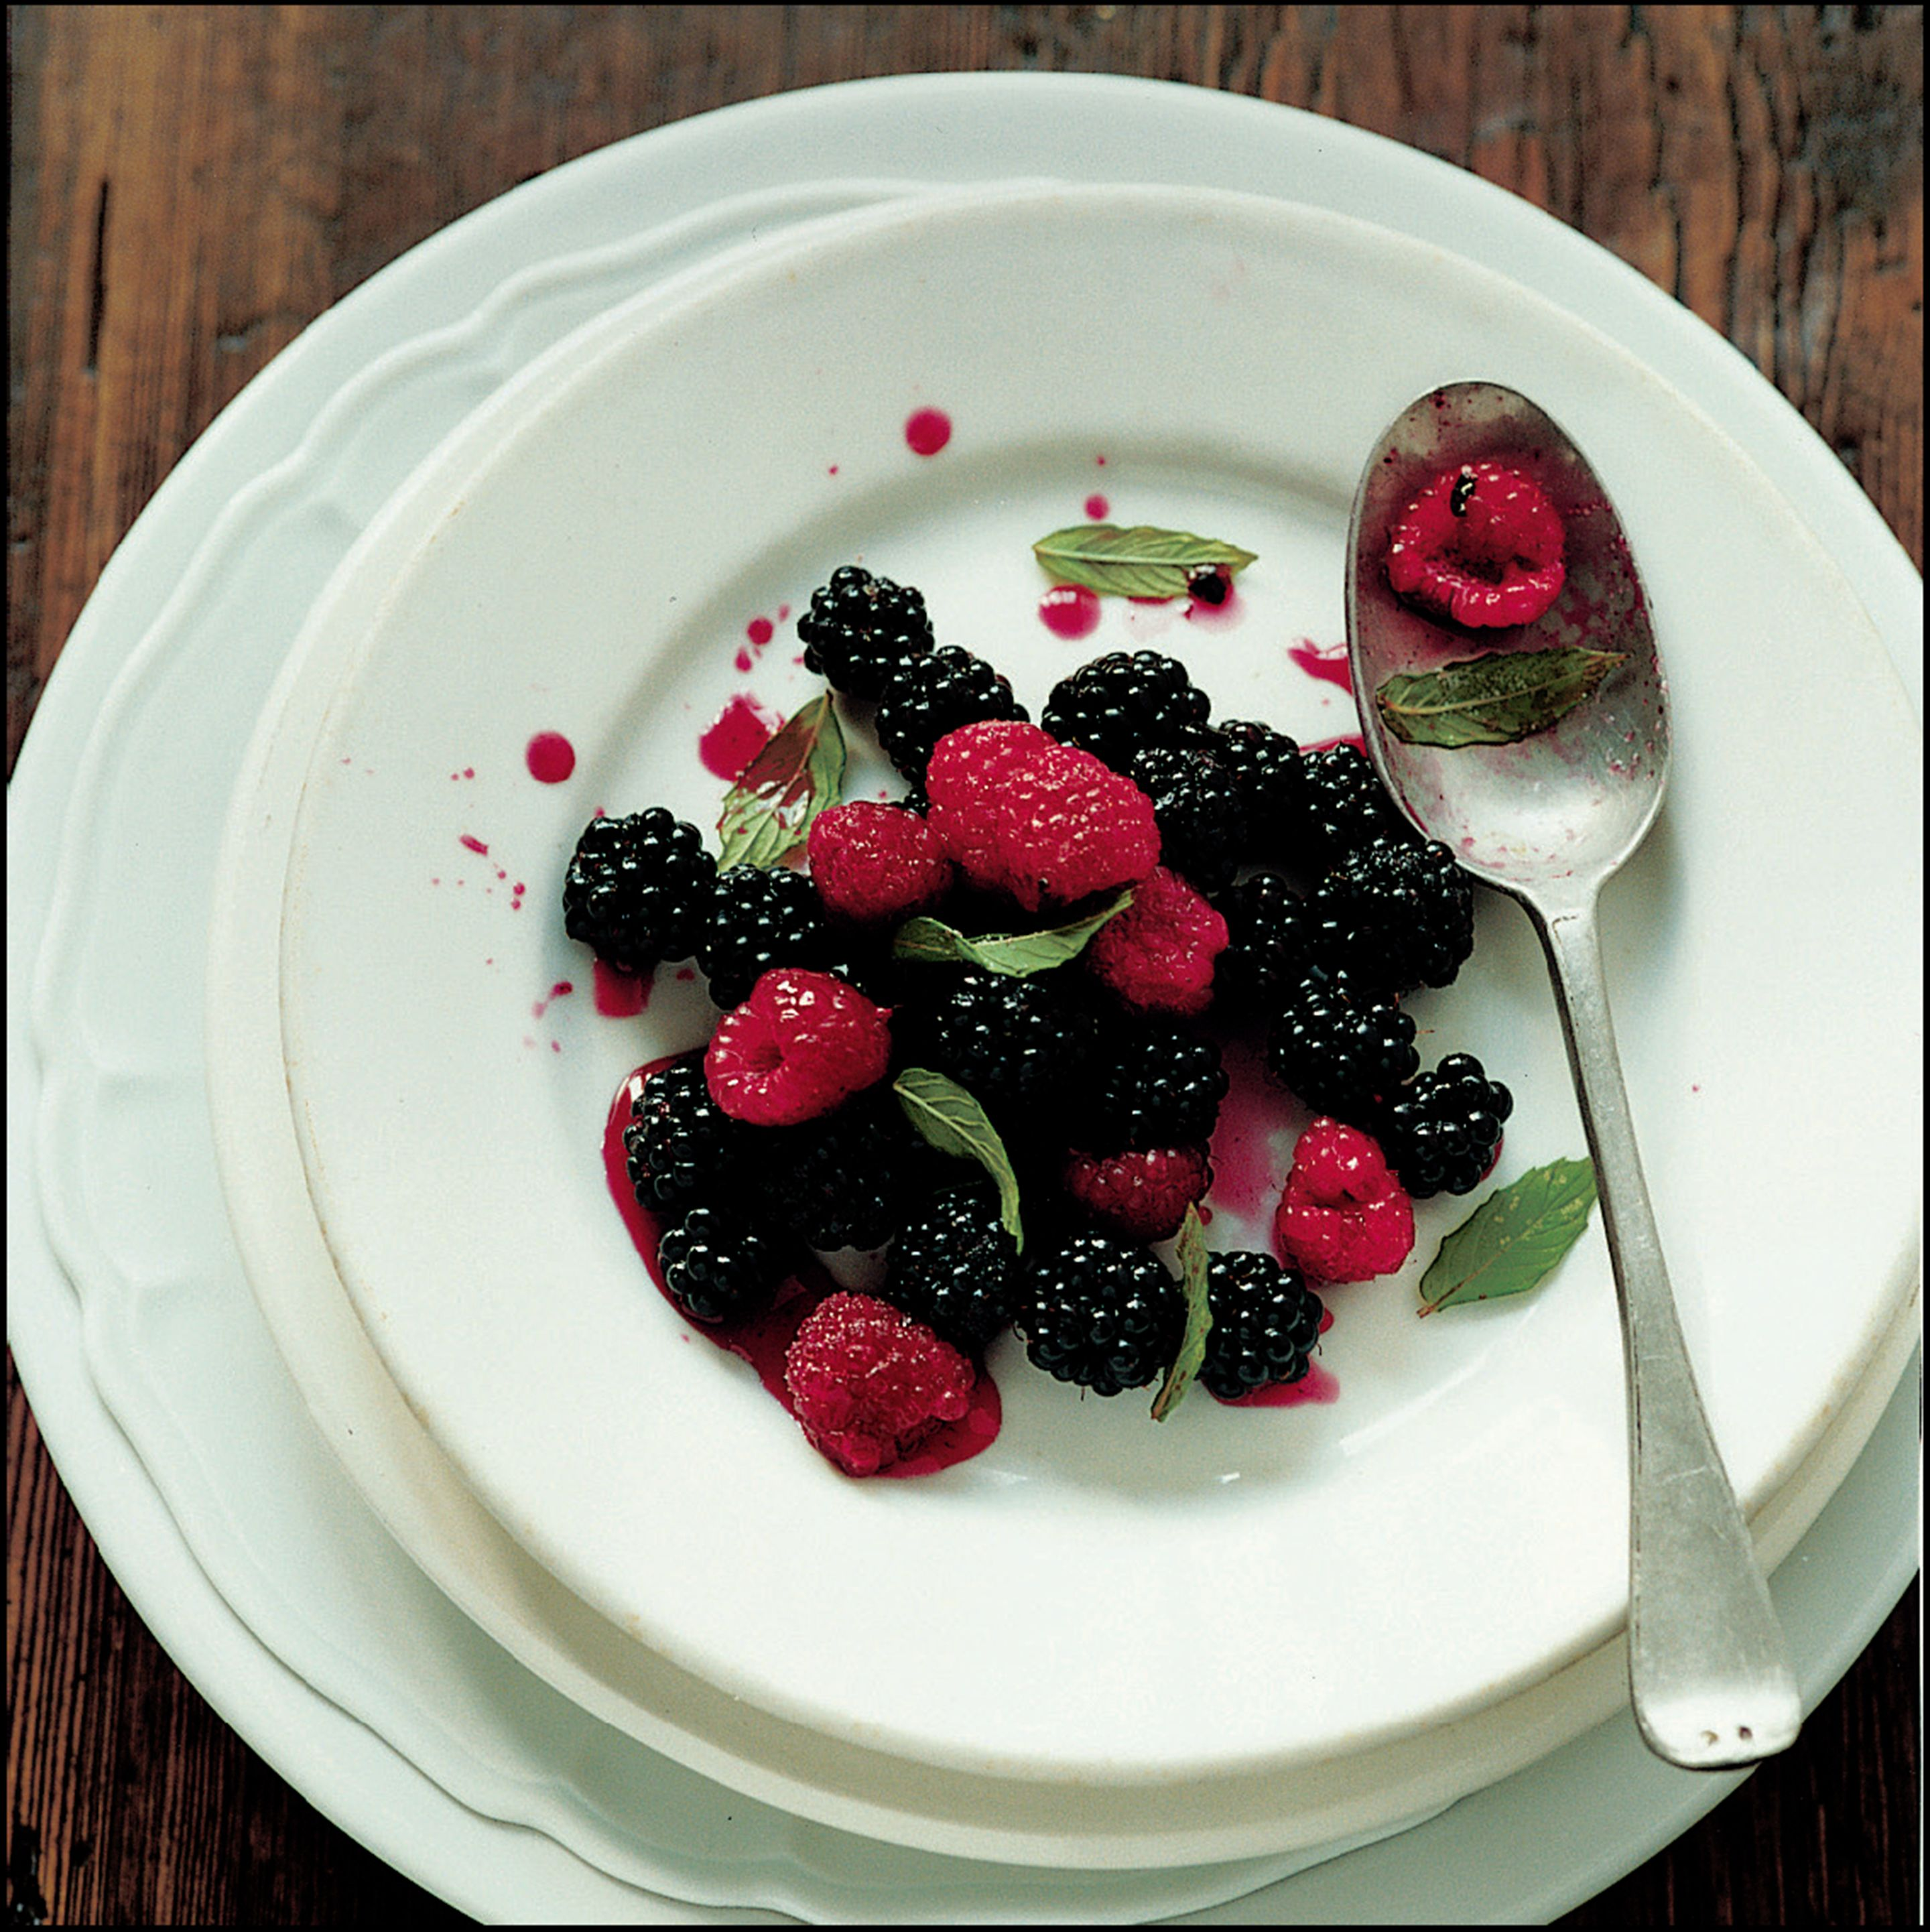 Raspberries and blackberries with sugar and lemon